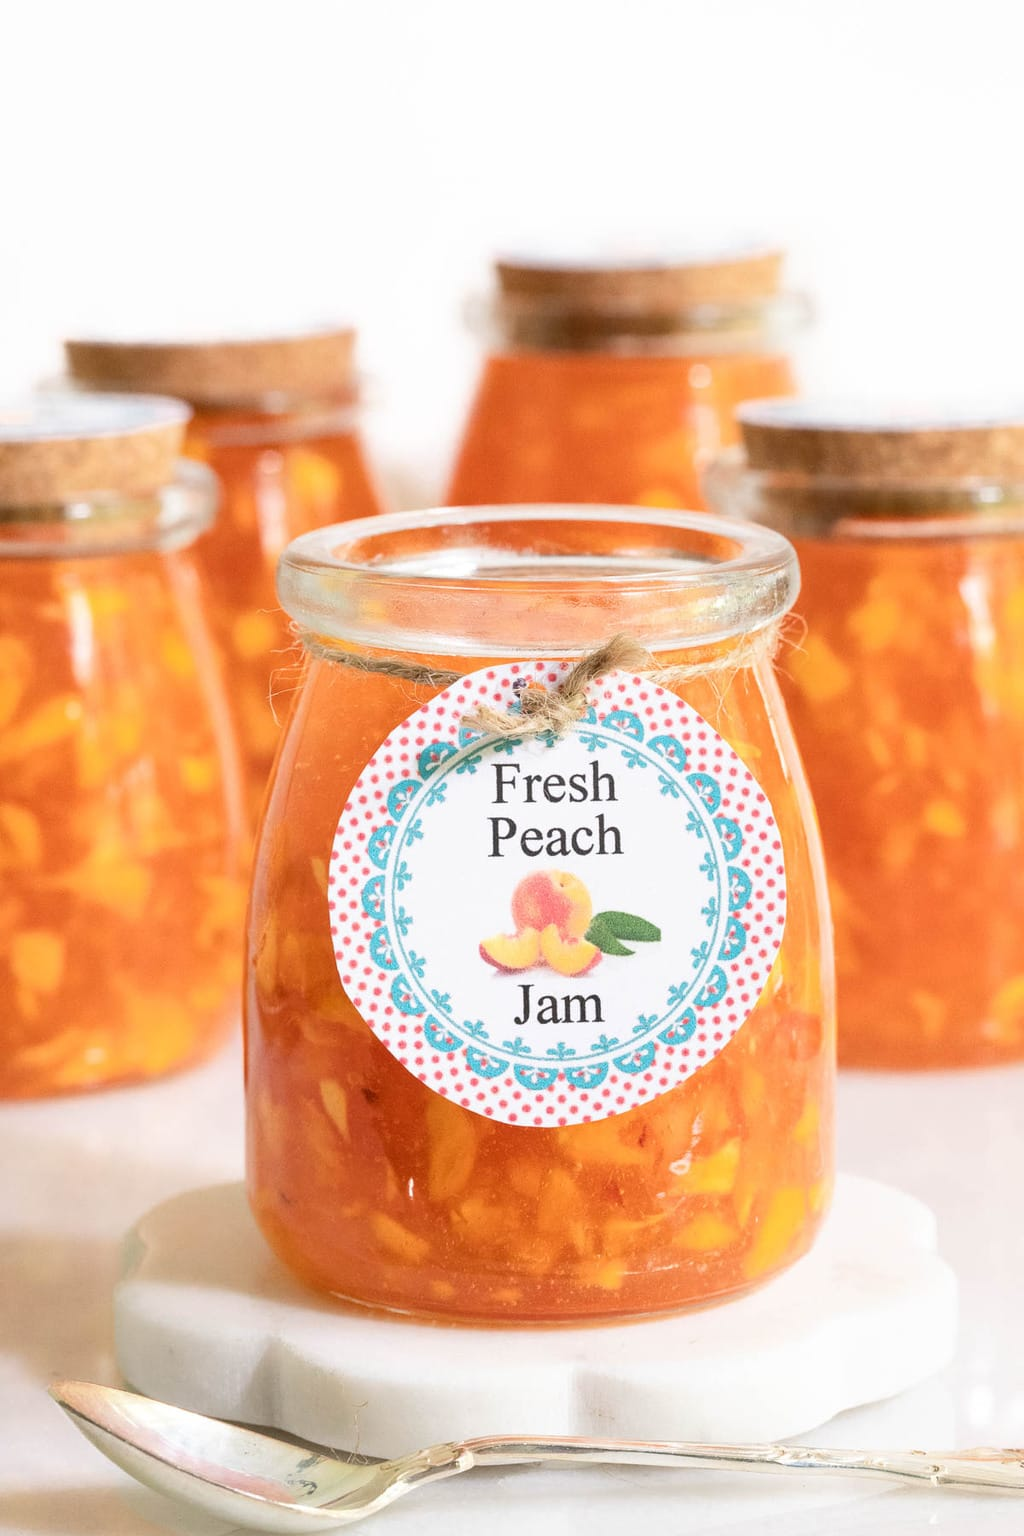 Vertical closeup photo of a glass jar of Easy Peach Freezer Jam with a colorful label tied to it and more jars in the background.